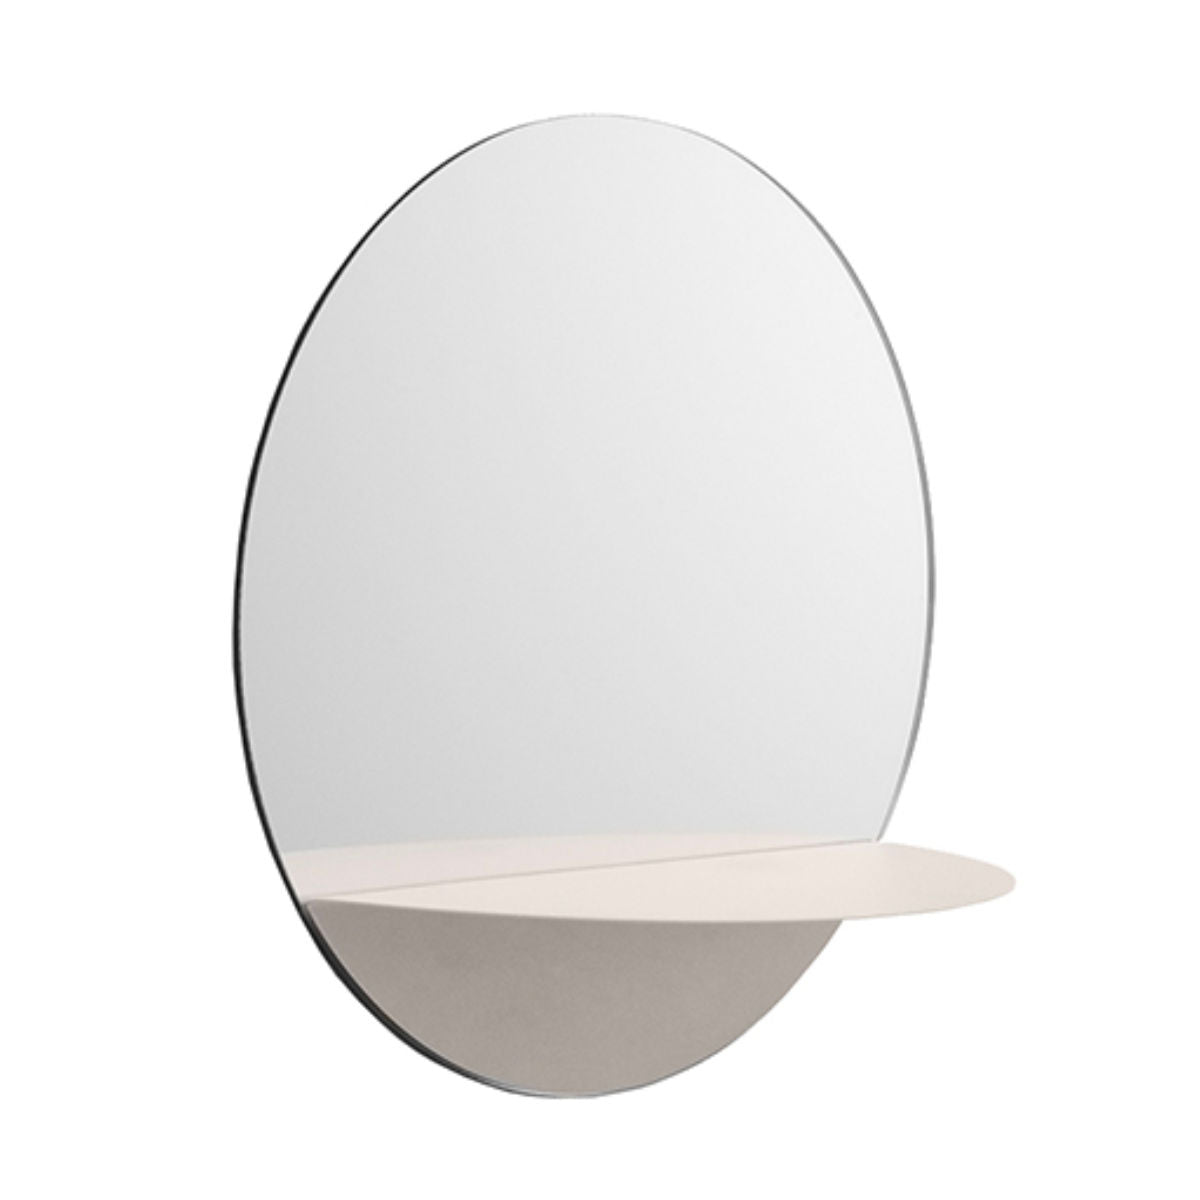 Normann Copenhagen Horizon mirror round, white